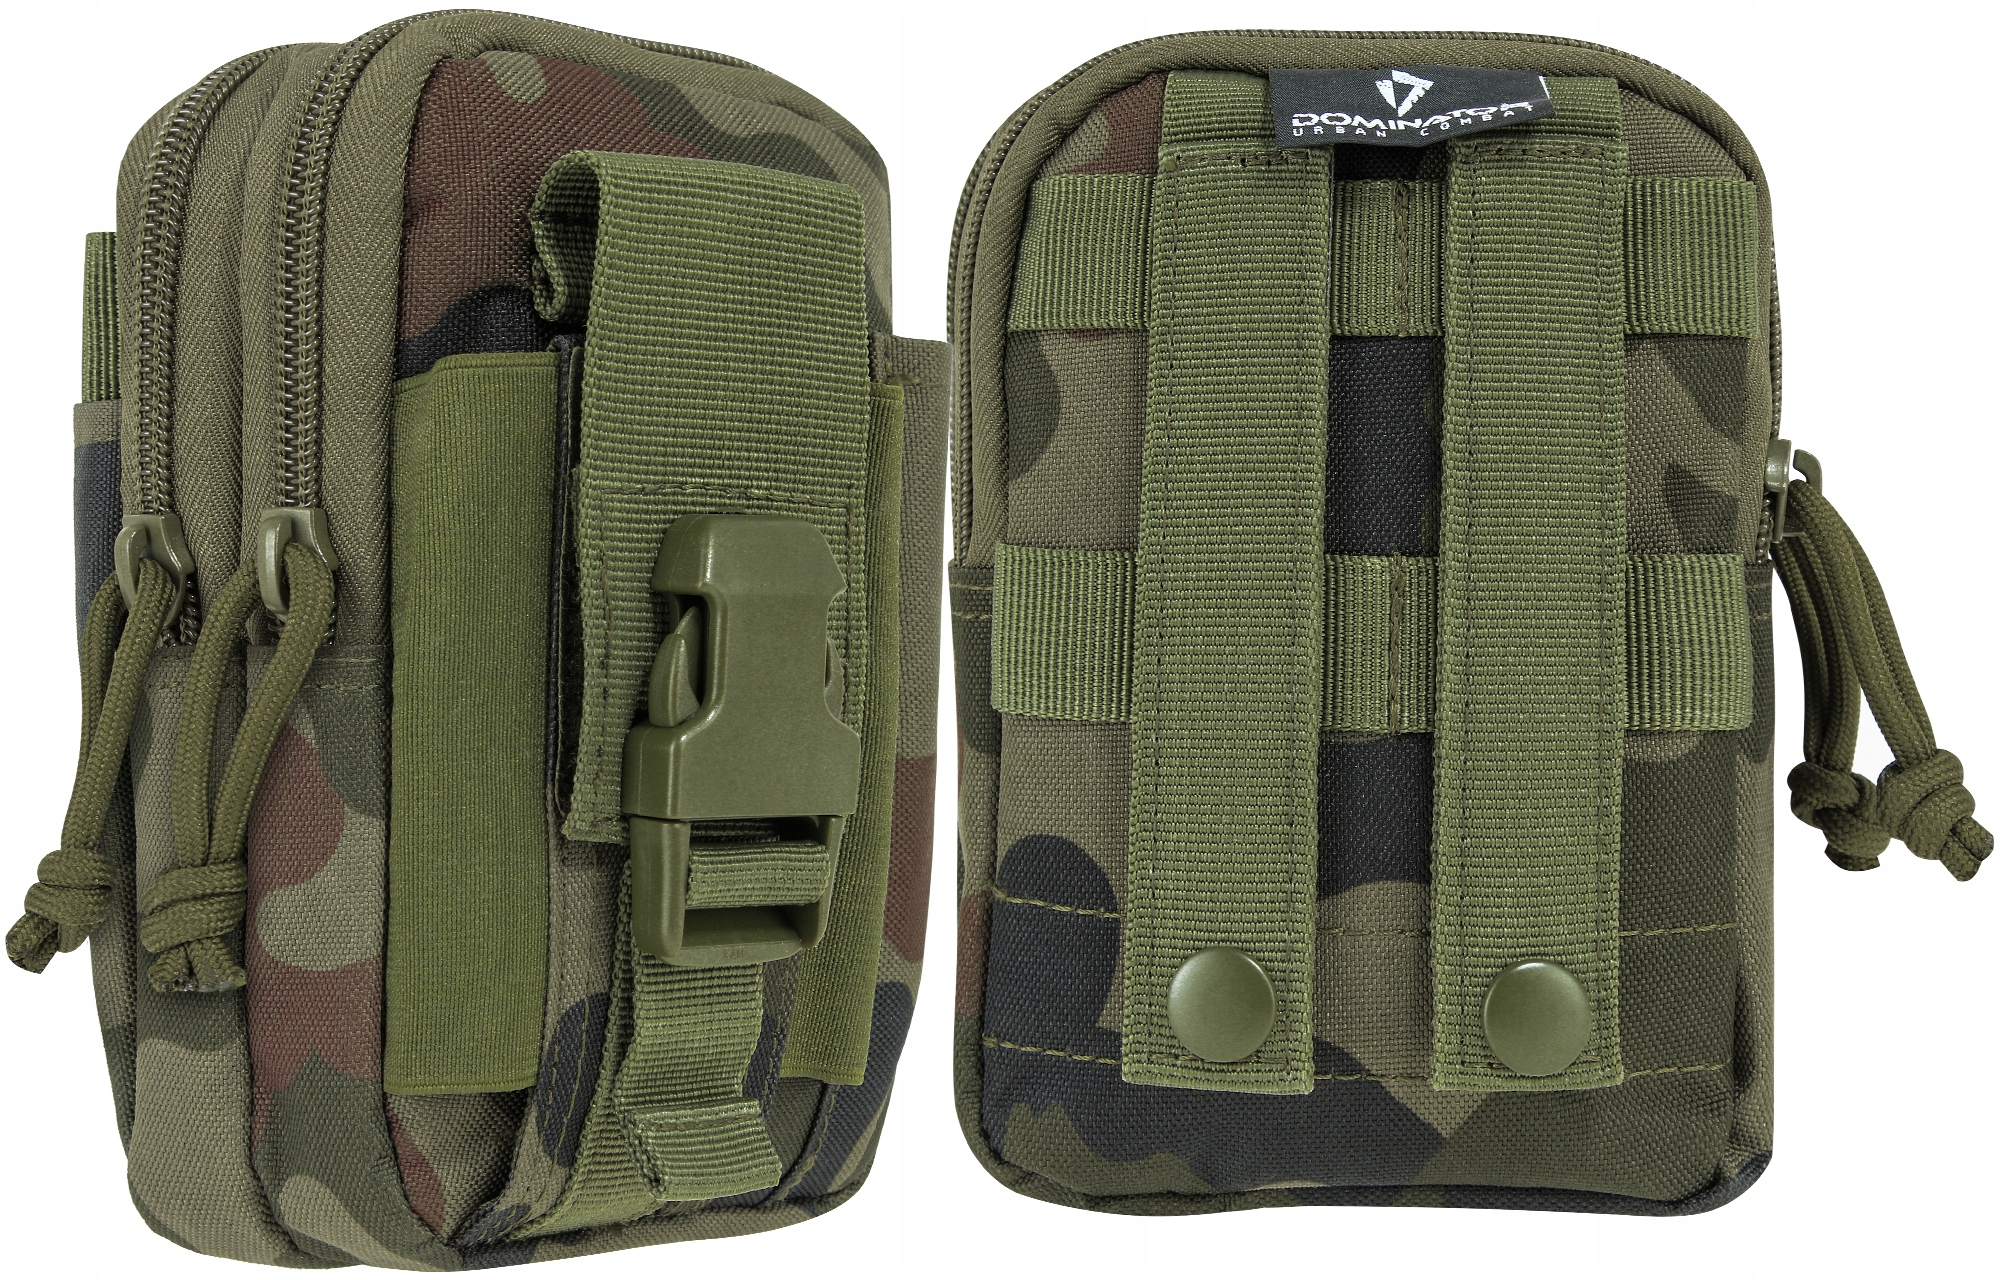 MILITARY Pocket PERS Tray Kidney Bag wz.93